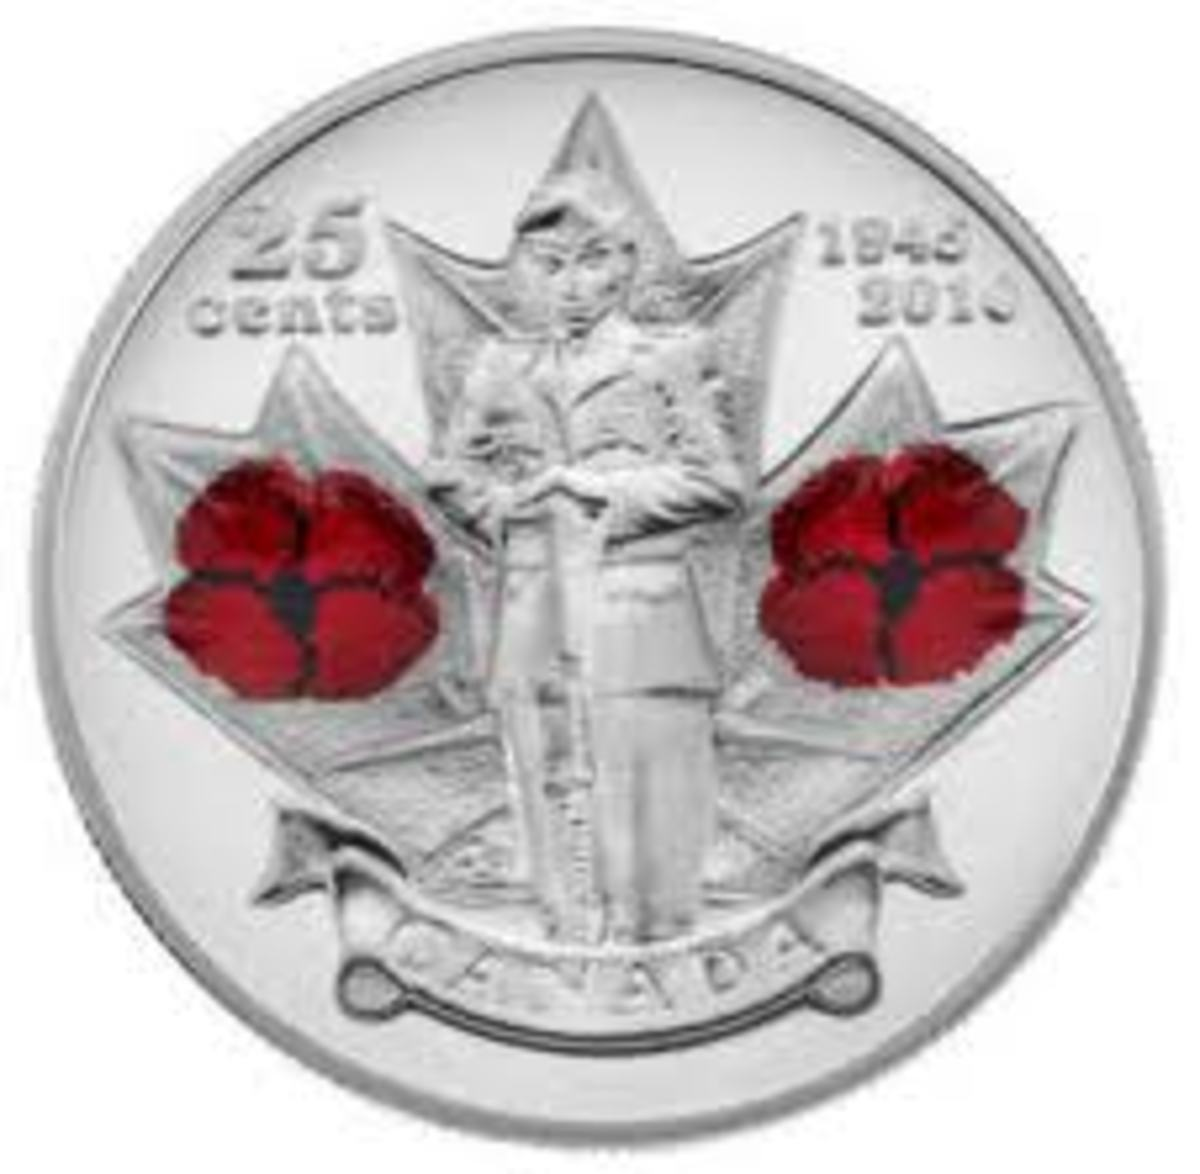 Double Poppy or Remembrance Coin